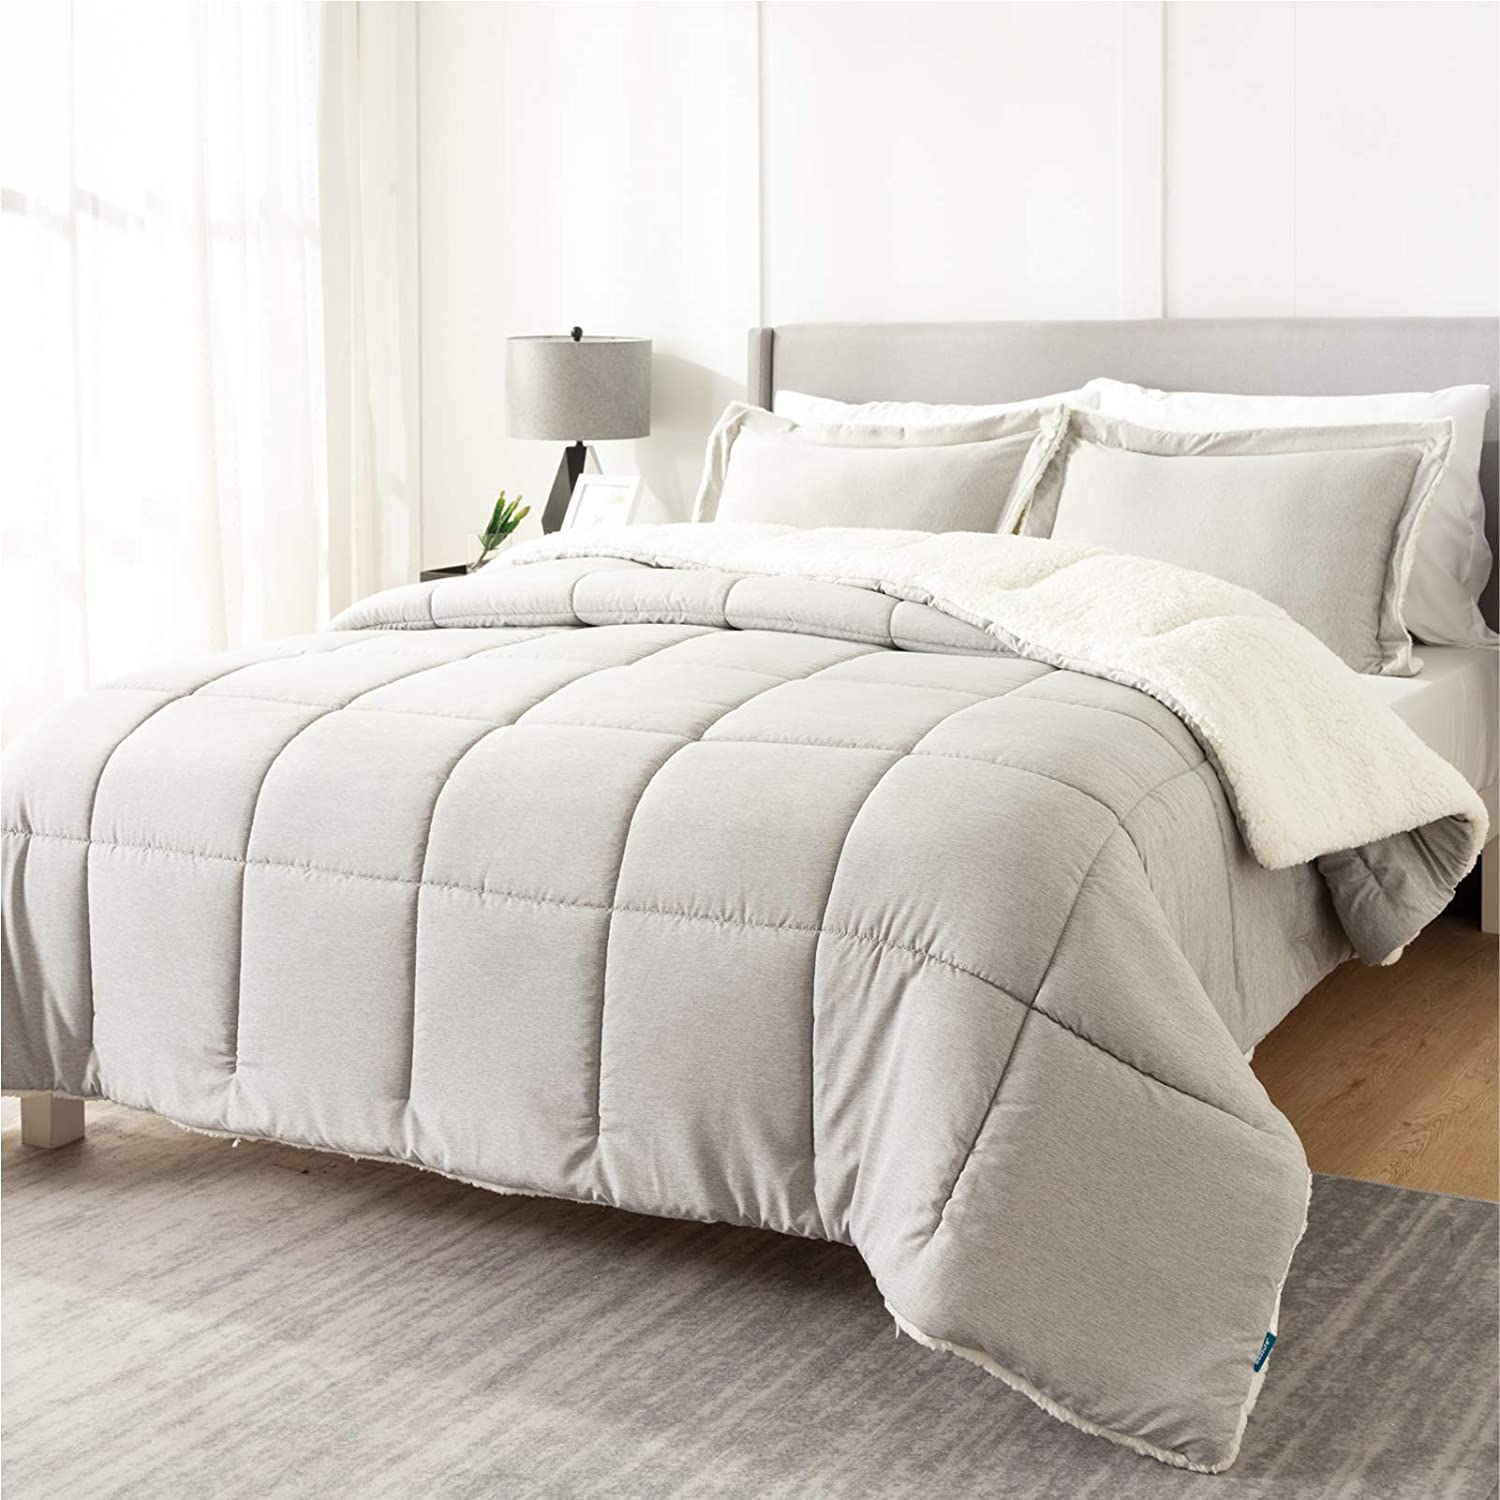 Bedsure Sherpa Comforter Set King Grey Winter 3 Piece Cationic Dyeing Reversible Soft Fluffy Down Alternative Bed Set with Pillow Sham, 102x90 inches